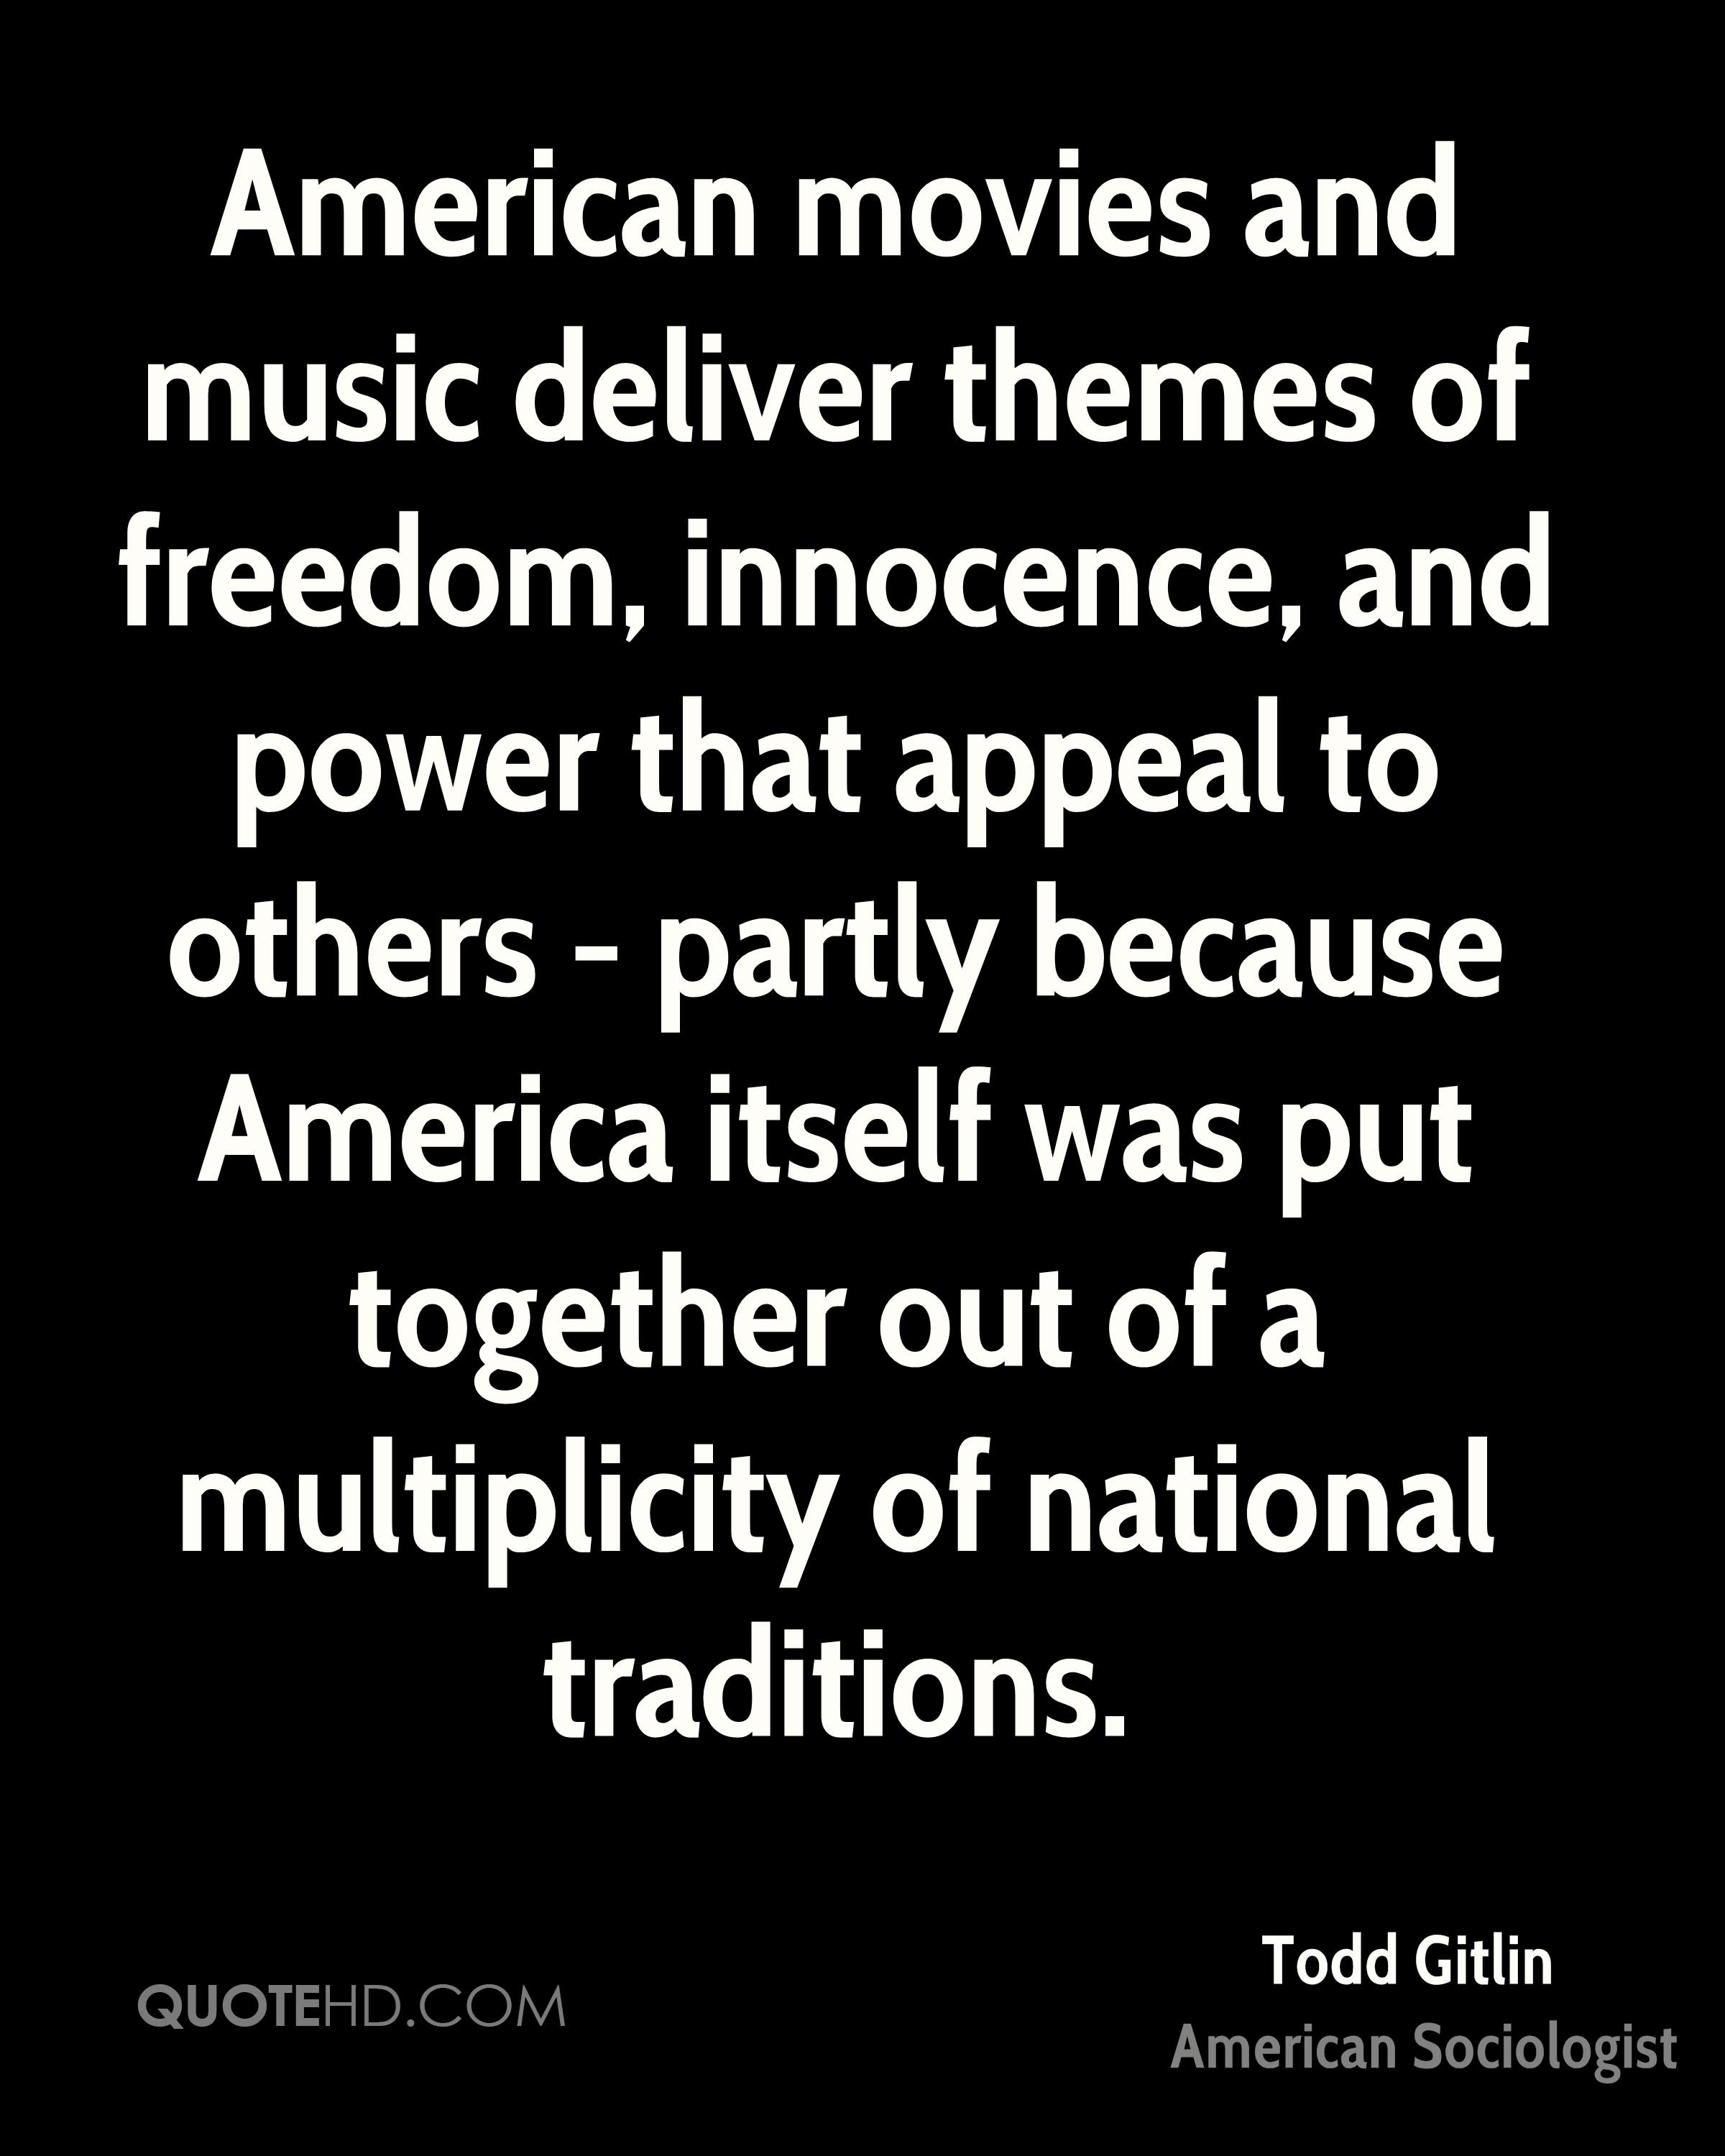 American movies and music deliver themes of freedom, innocence, and power that appeal to others - partly because America itself was put together out of a multiplicity of national traditions.